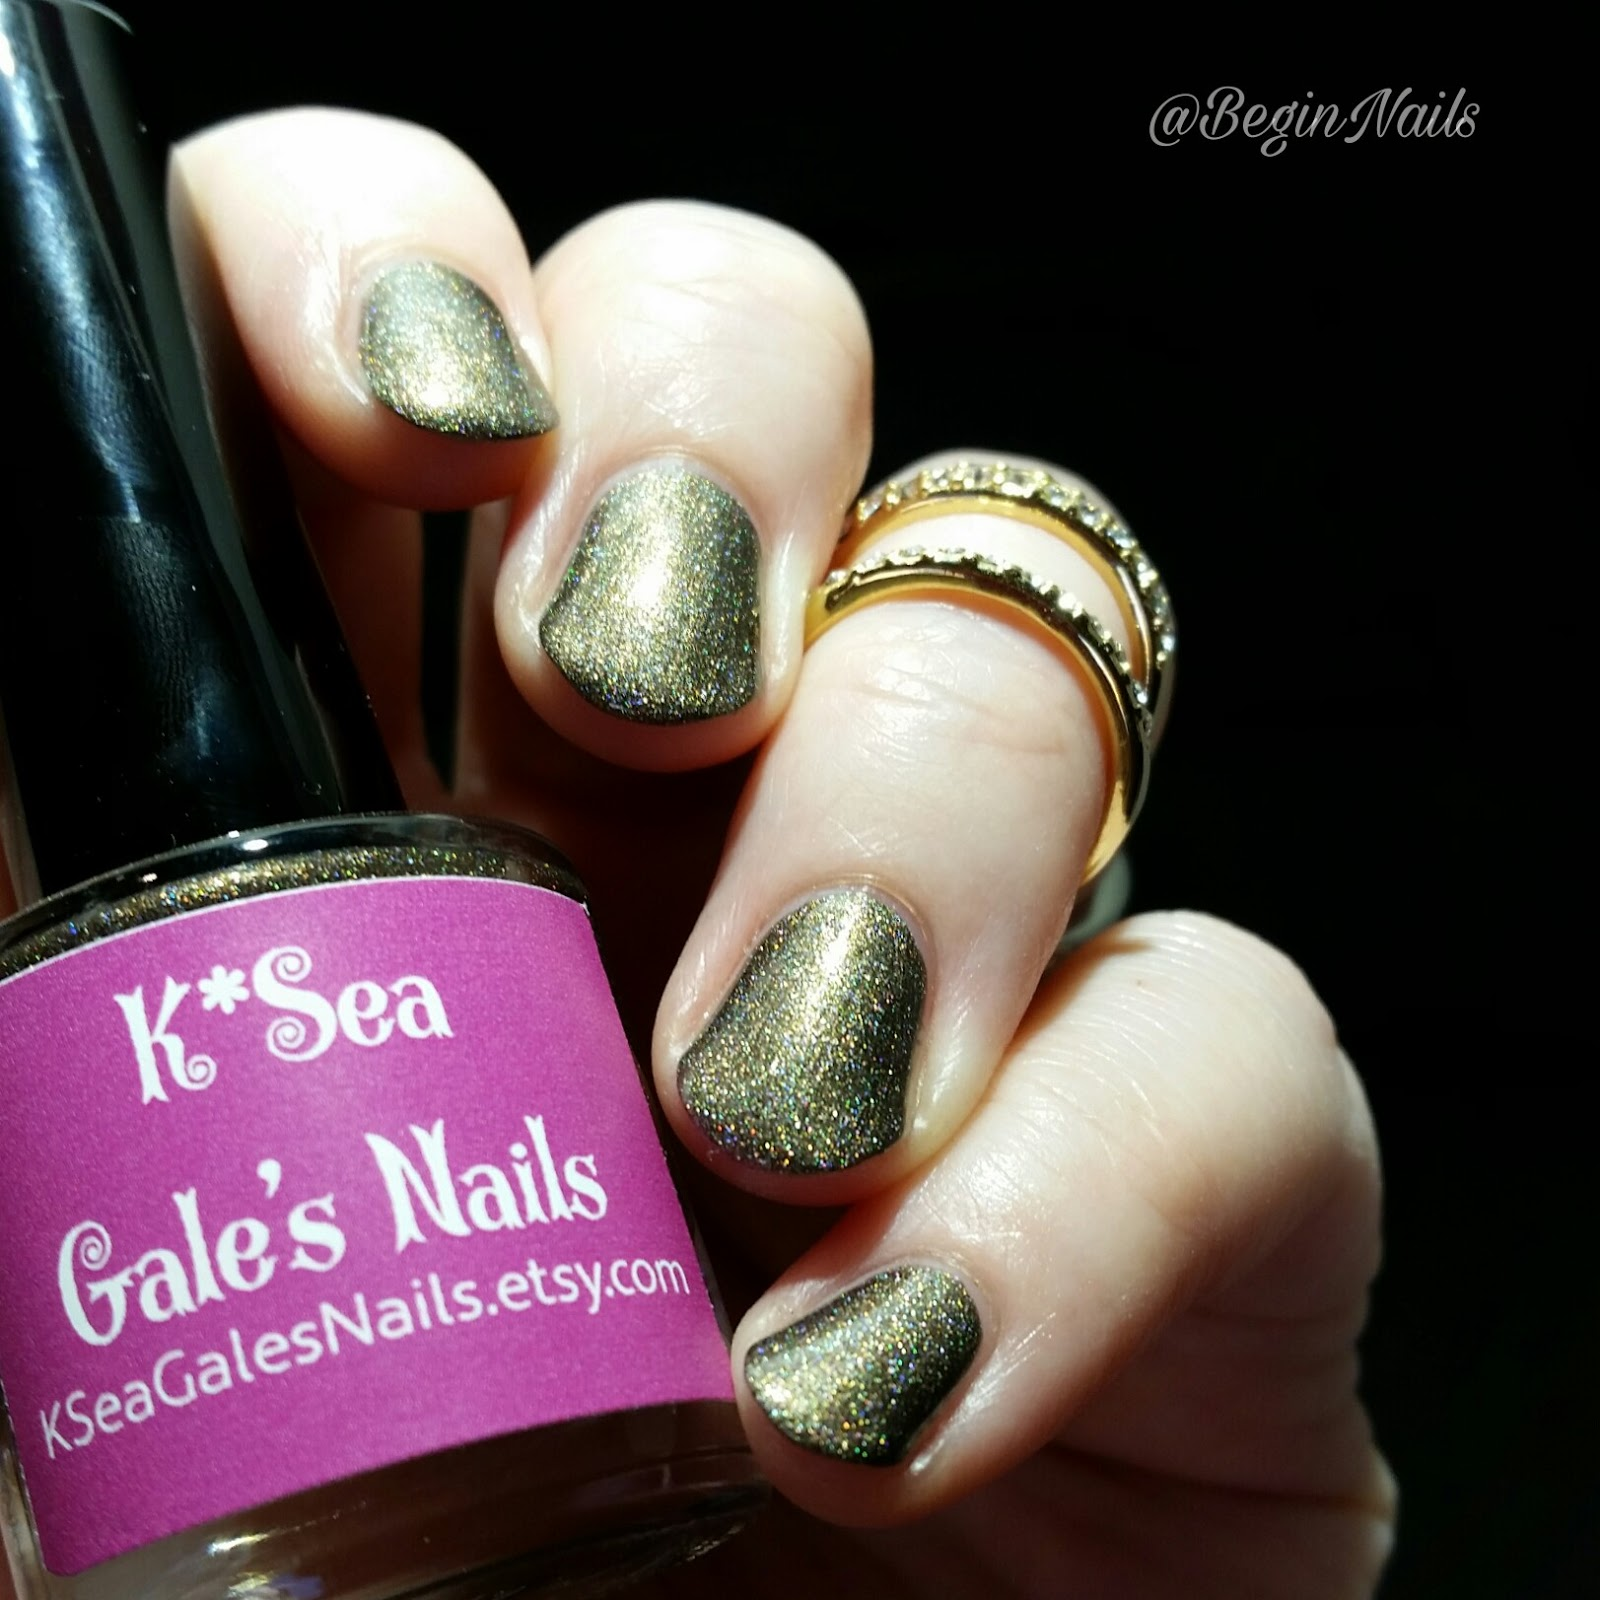 Let\'s Begin Nails: K*Sea Gale\'s Nails Holloween Collection Sample ...